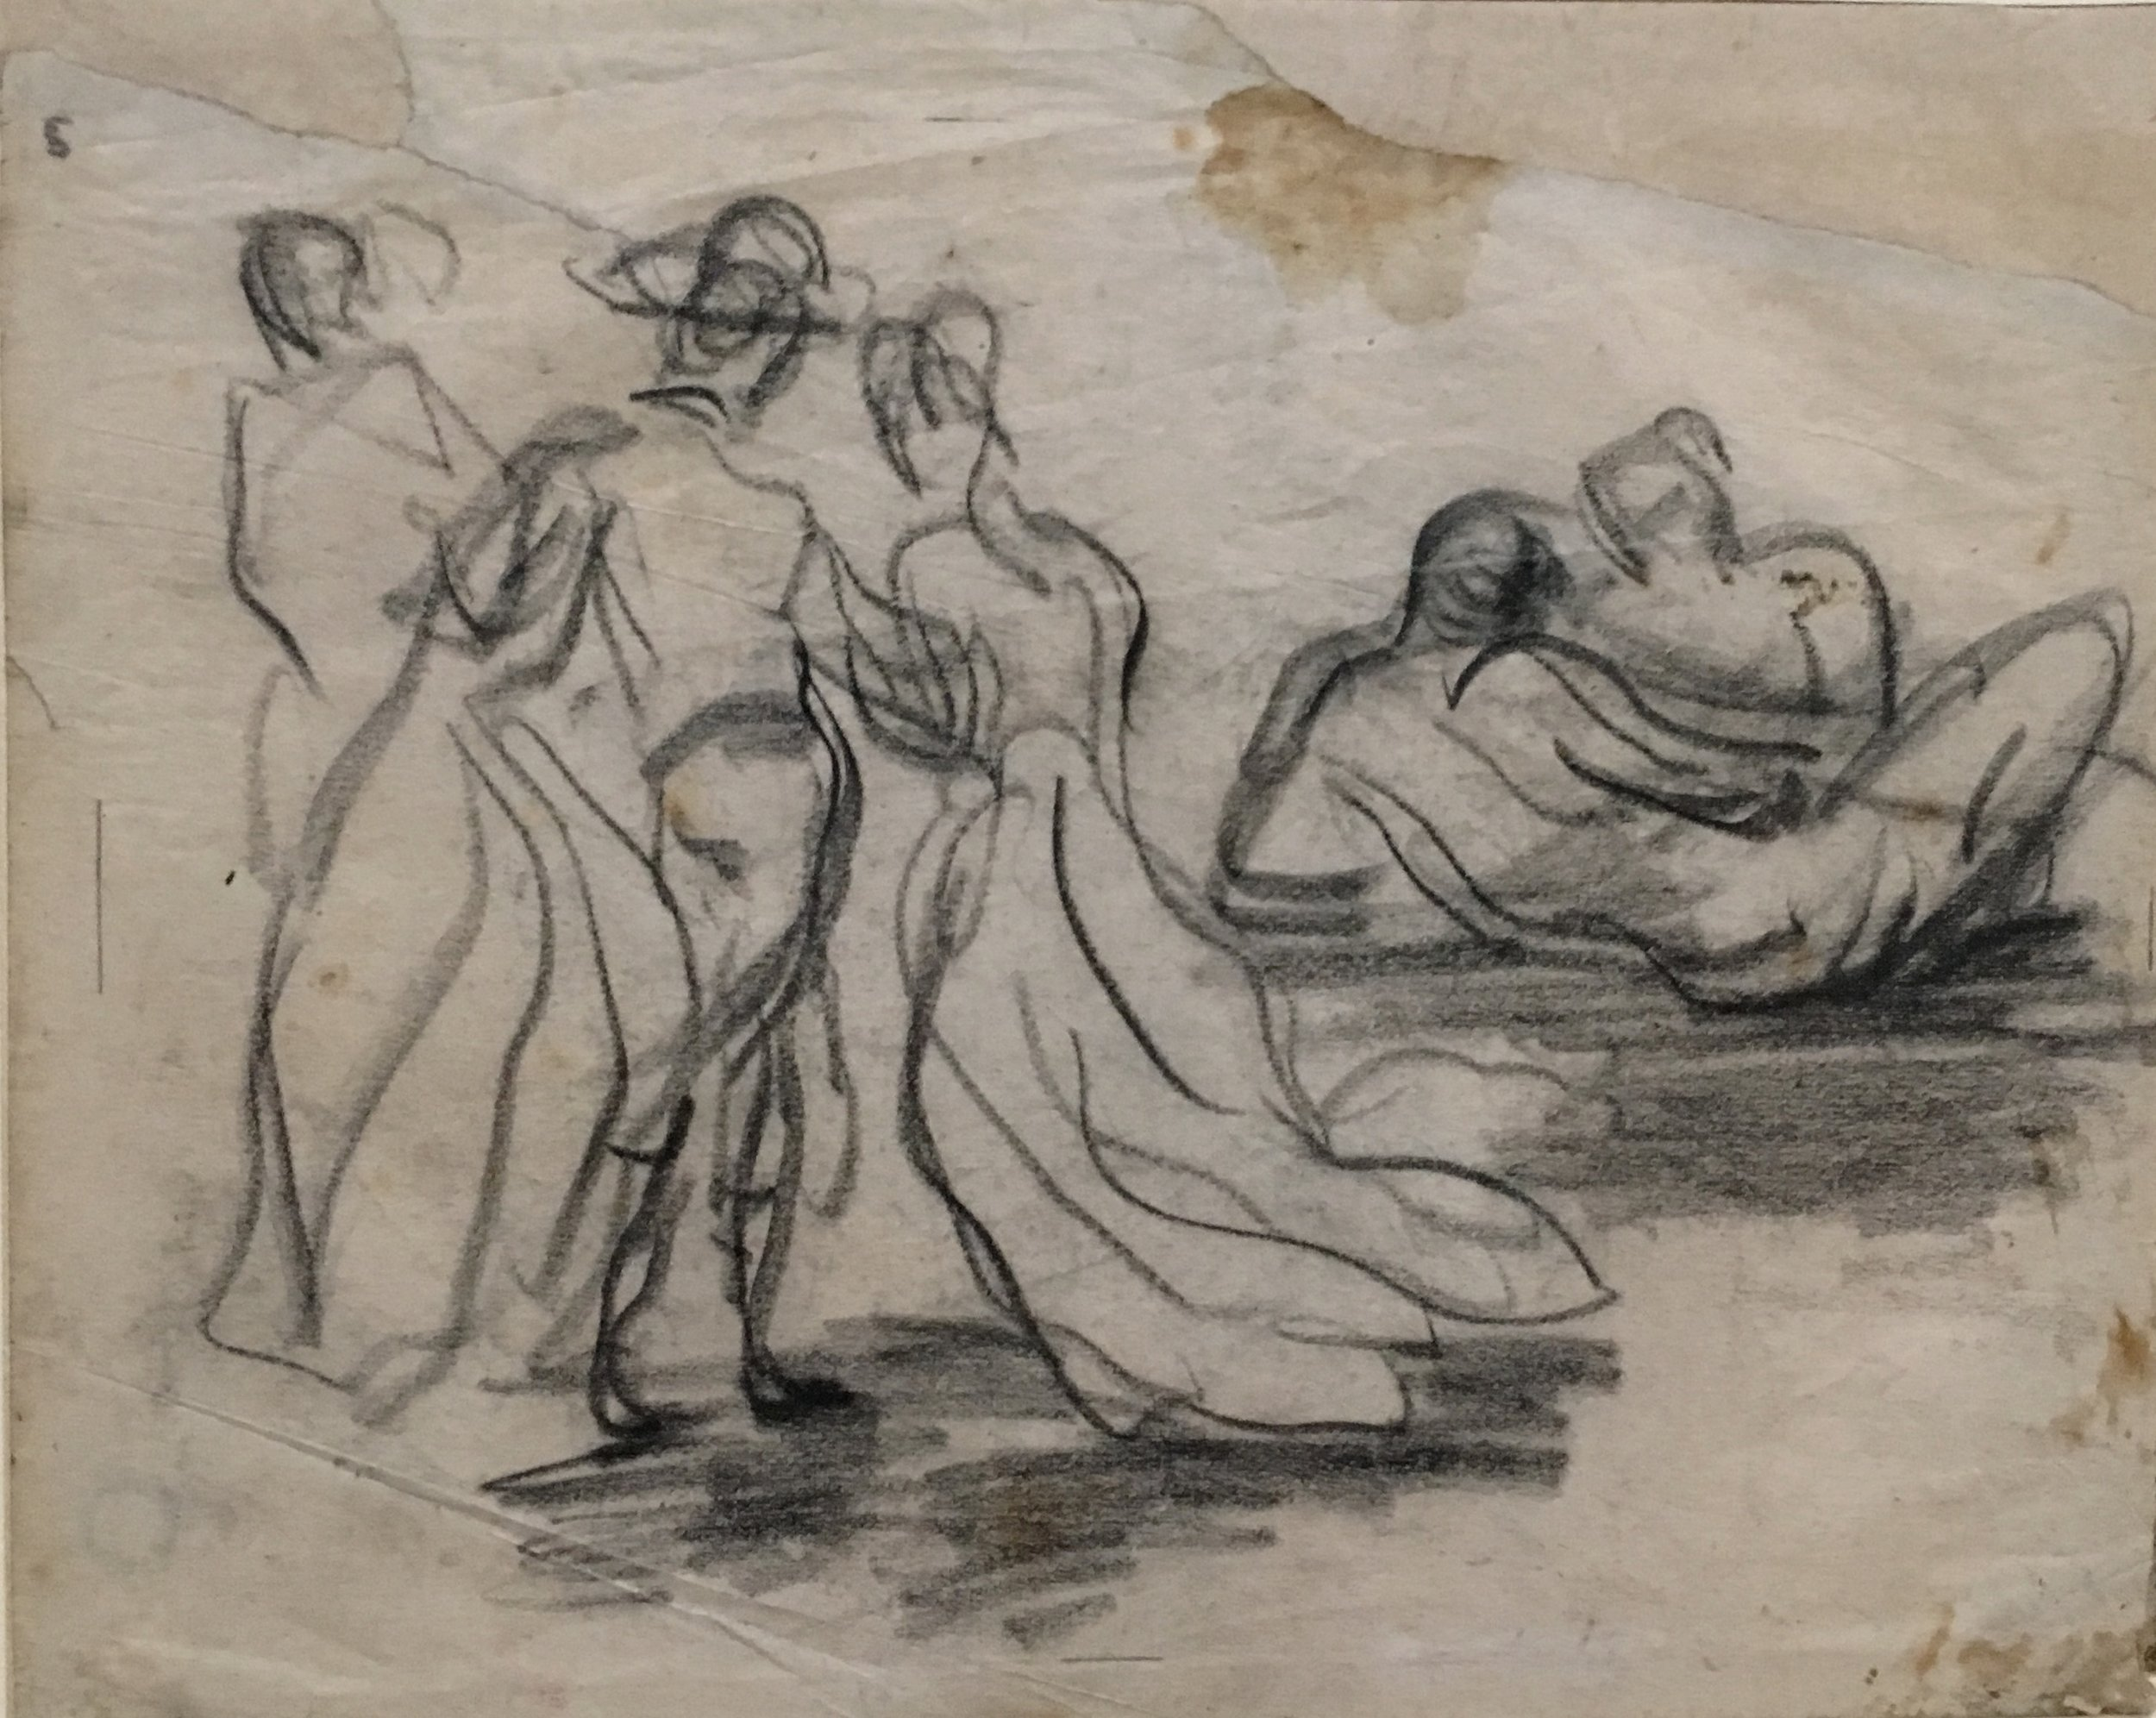 Composition with Five Figures,  Fêtes Galantes, pencil on blue writing paper, P. Cézanne, 1868-71, Kunstmuseum Basel